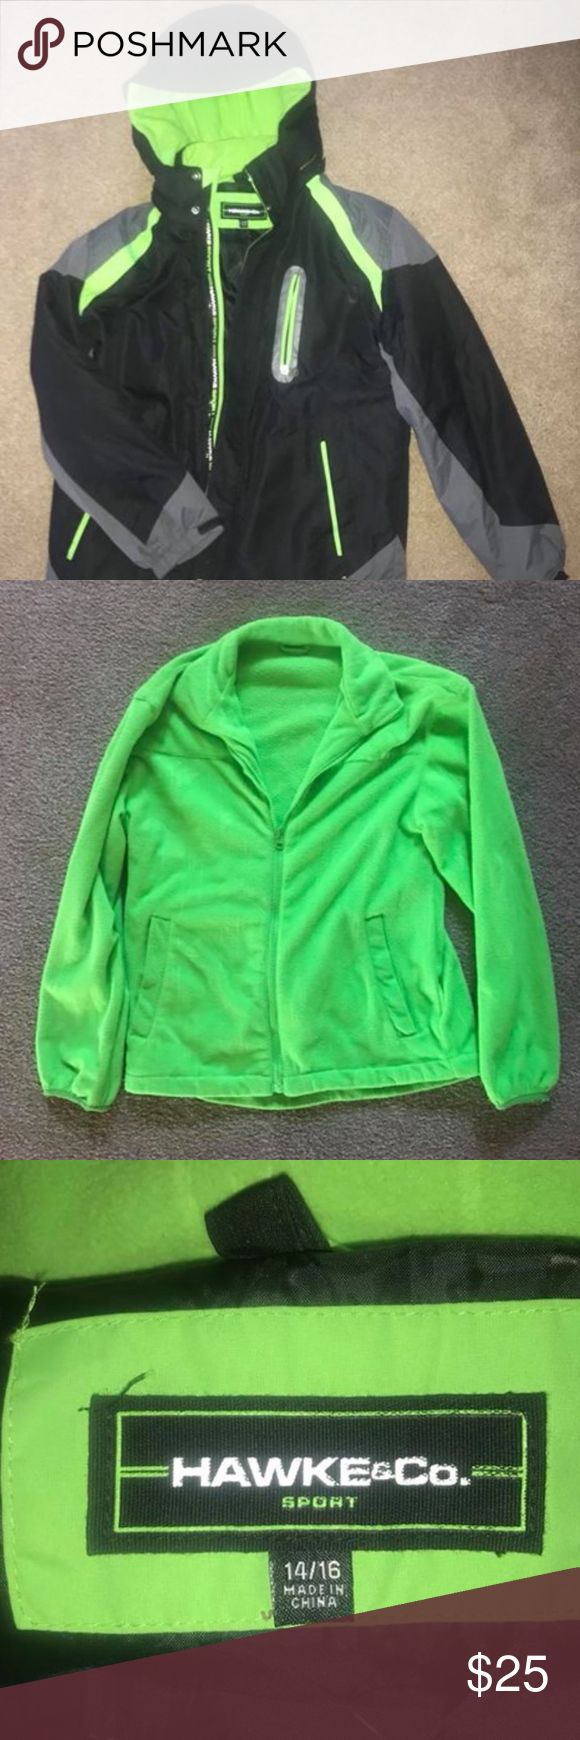 EUC Tony Hawk Boy's Winter Coat - Size 14/16 EUC, barely worn last year - size 14/16 - retails for $60 - asking $25. Comes with a detachable, matching, neon green fleece jacket for underneath. The hood is detachable with a zipper! Comes from a smoke-free home, machine washable! Hawke & Co Jackets & Coats